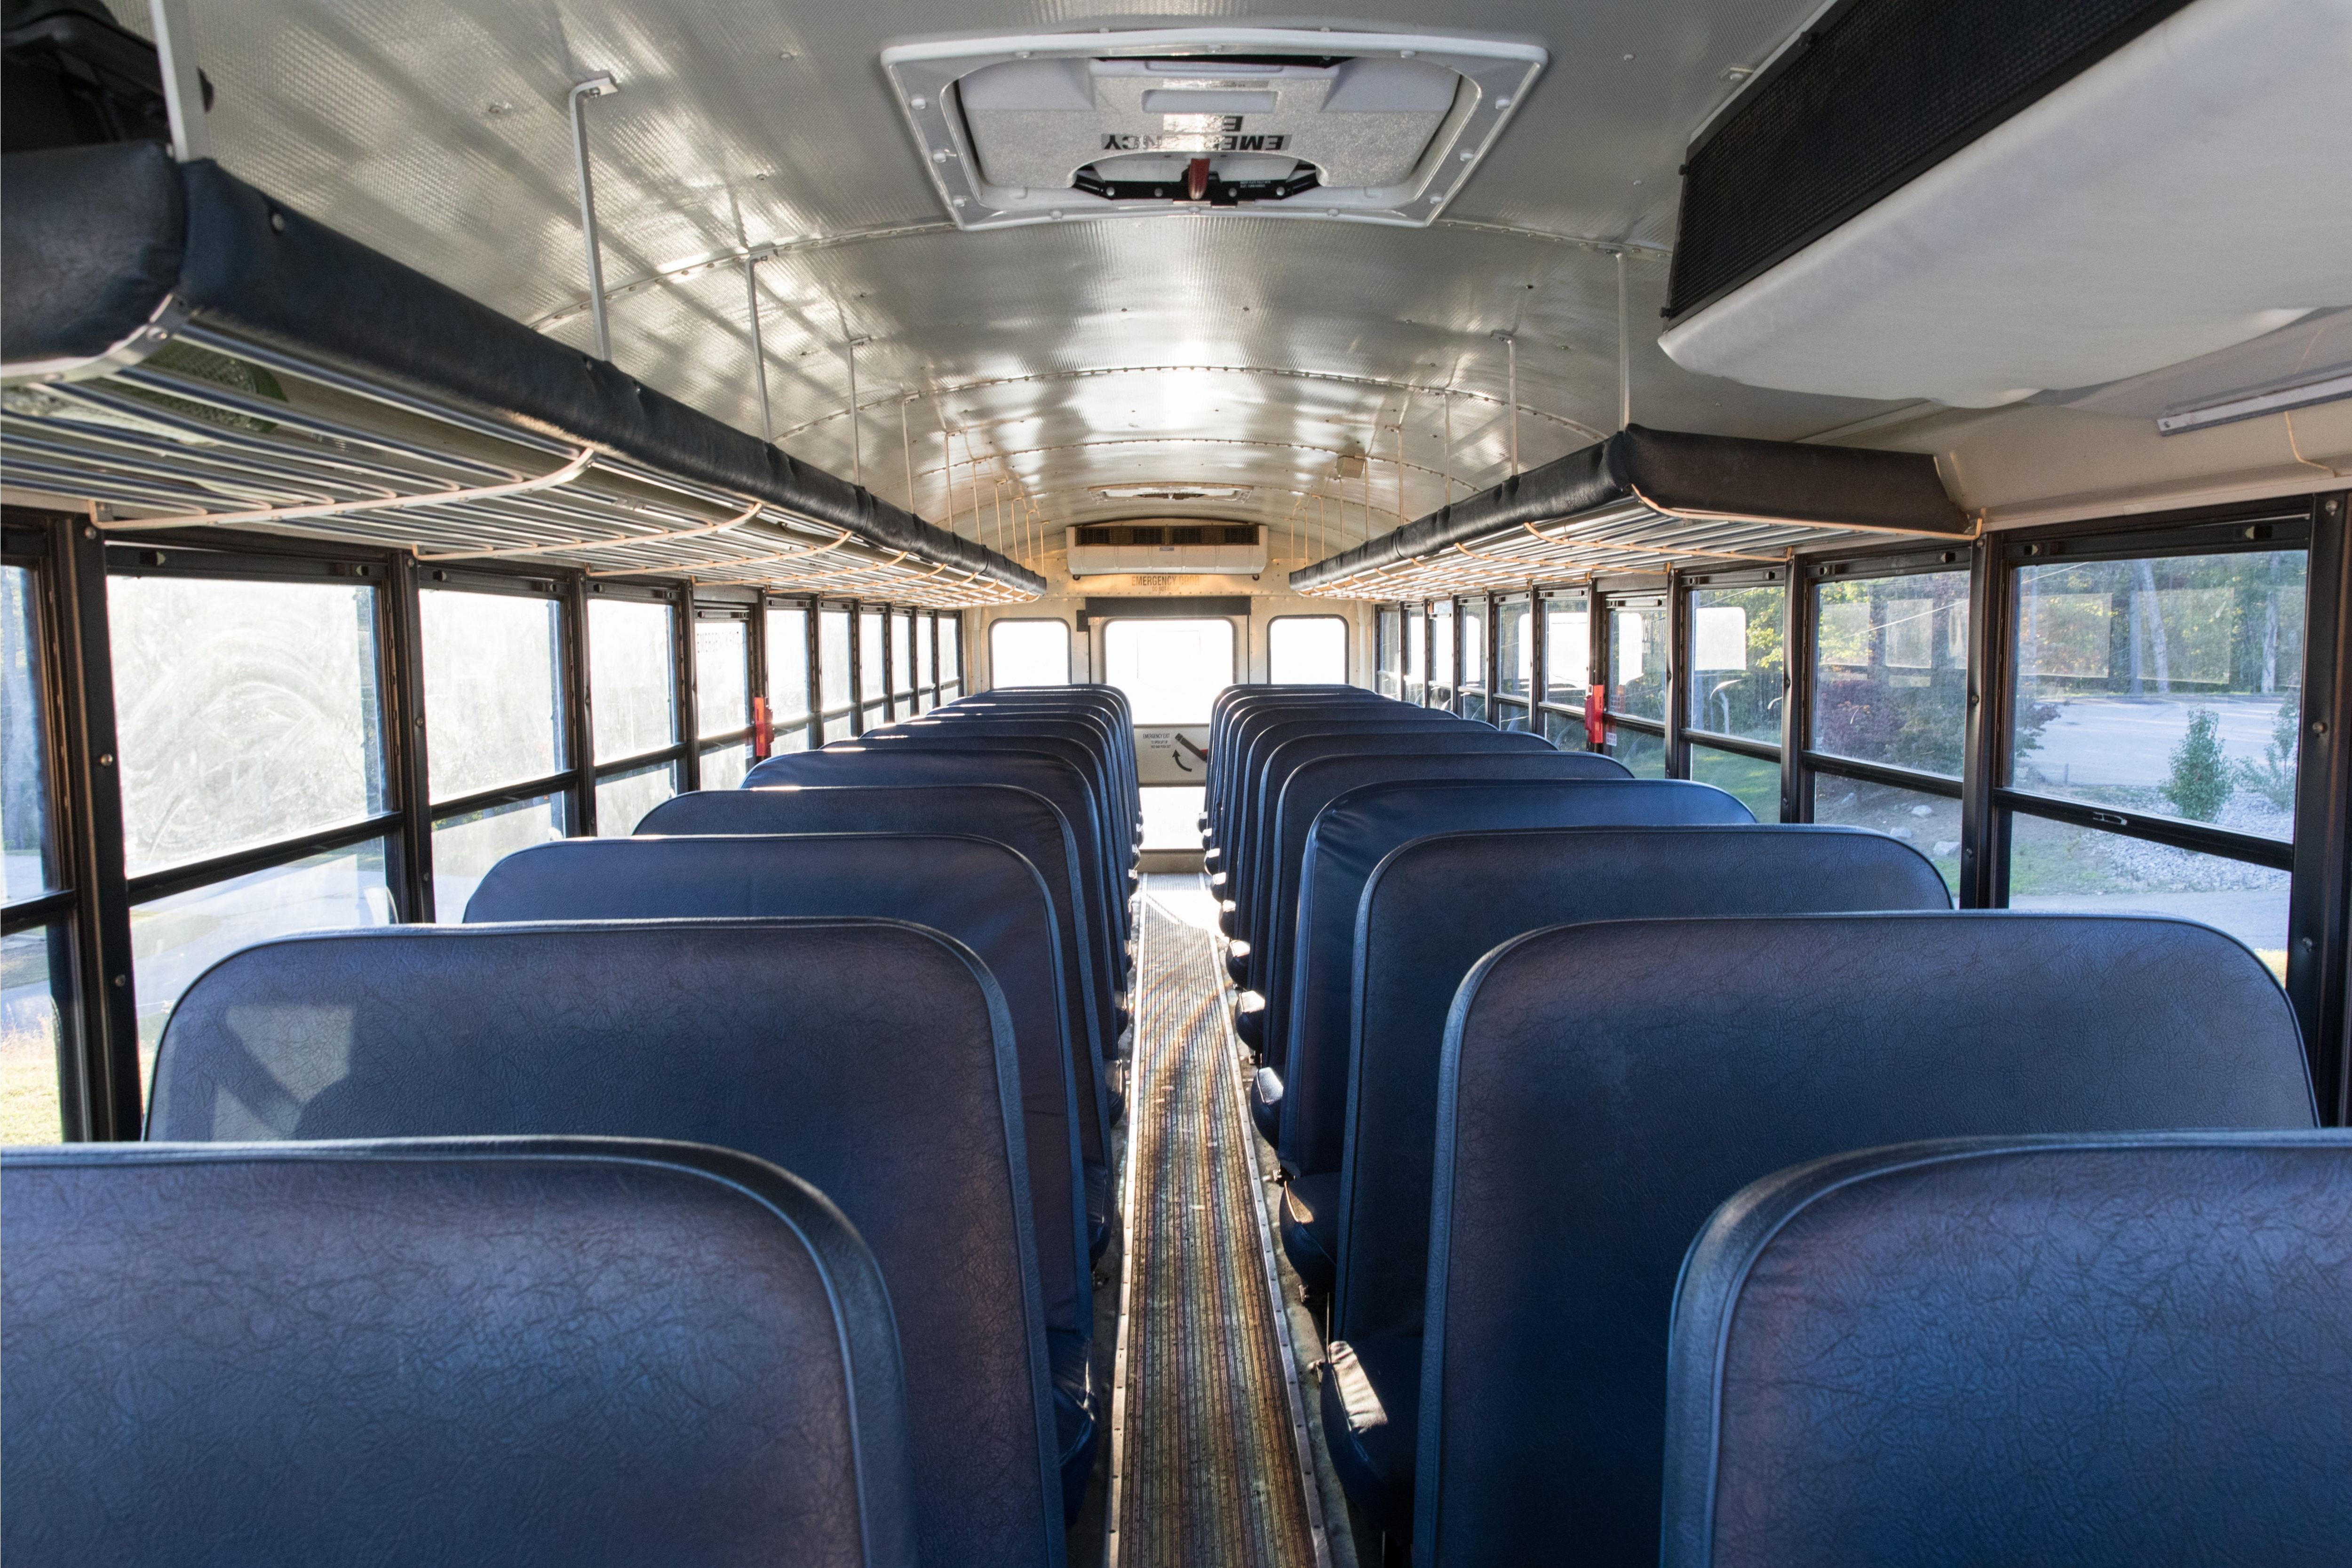 Dealing With School Bus Trespassing